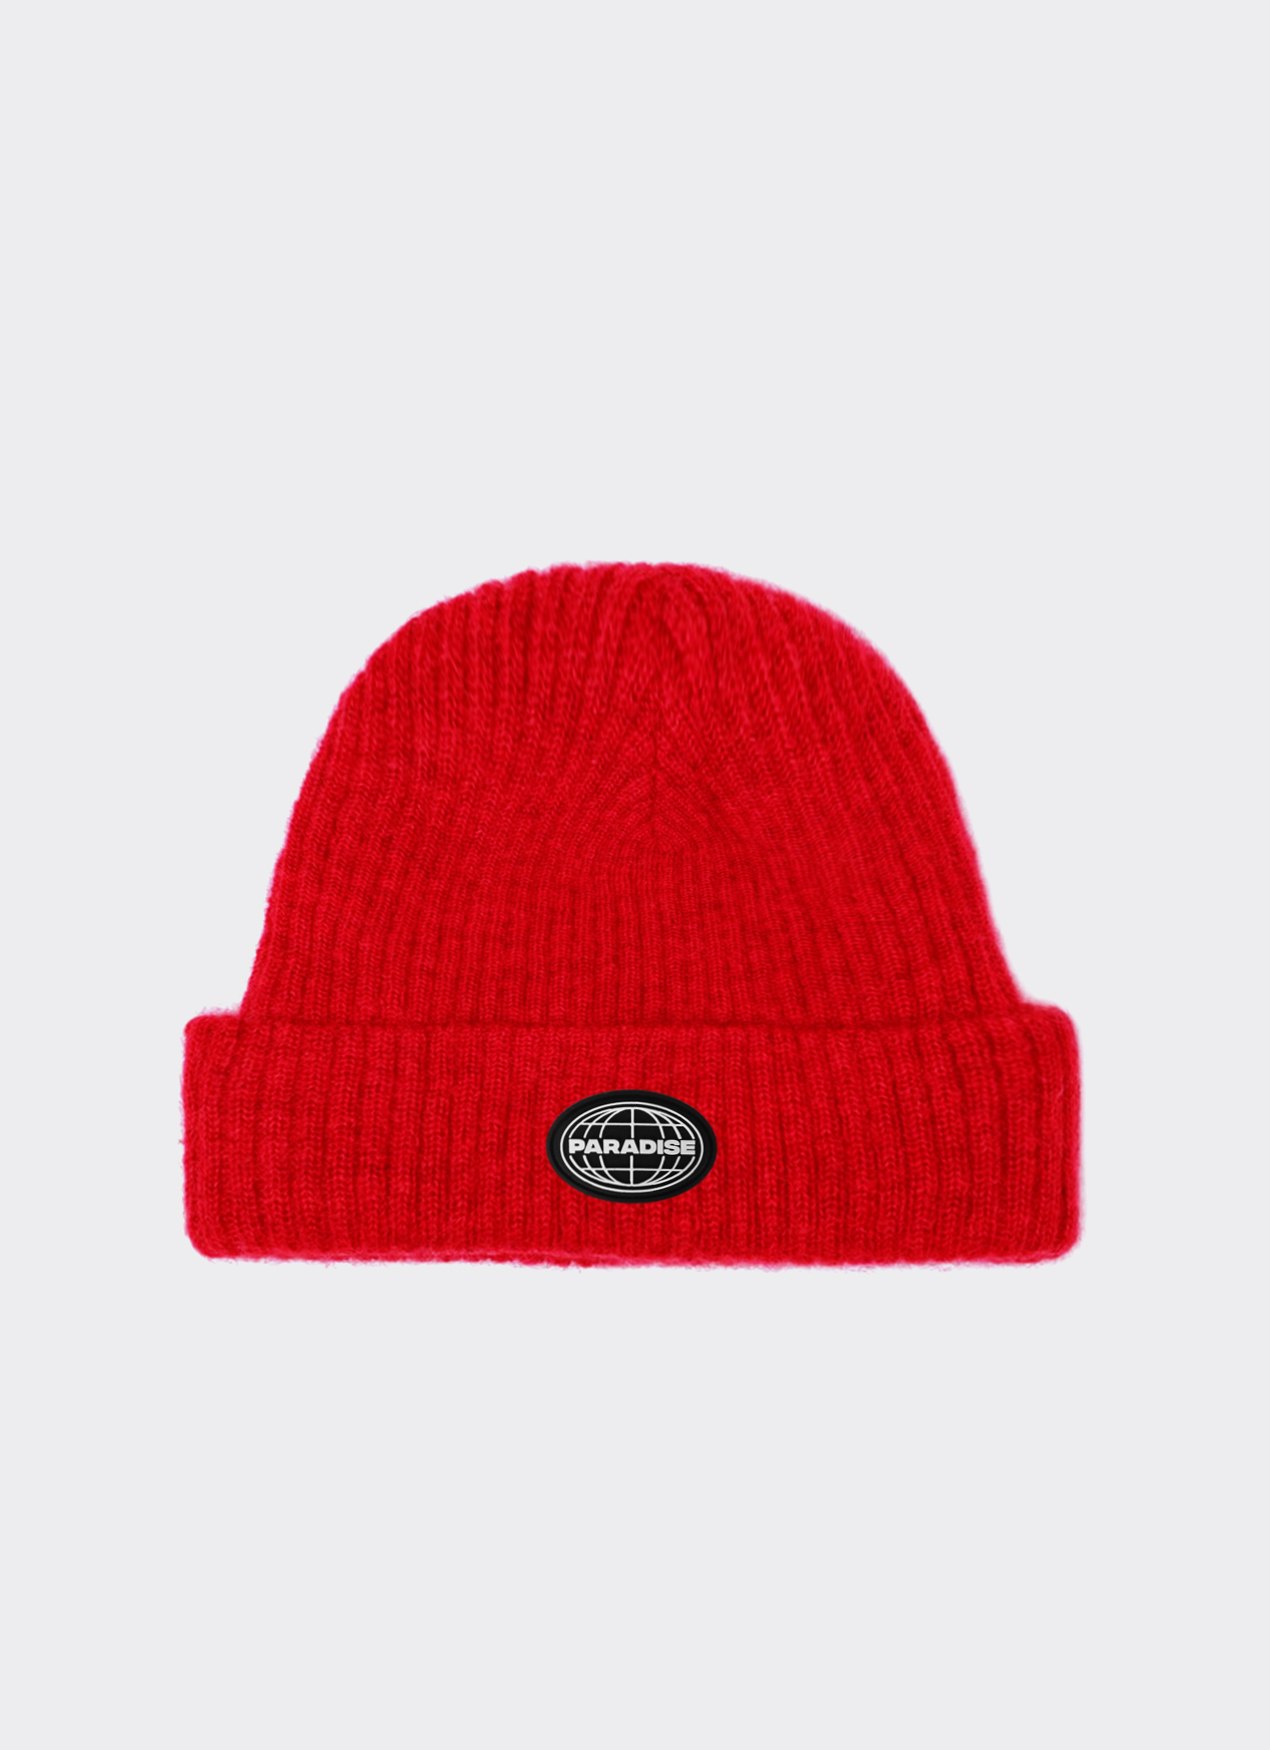 Paradise Youth Club Enigma Beanie - Red